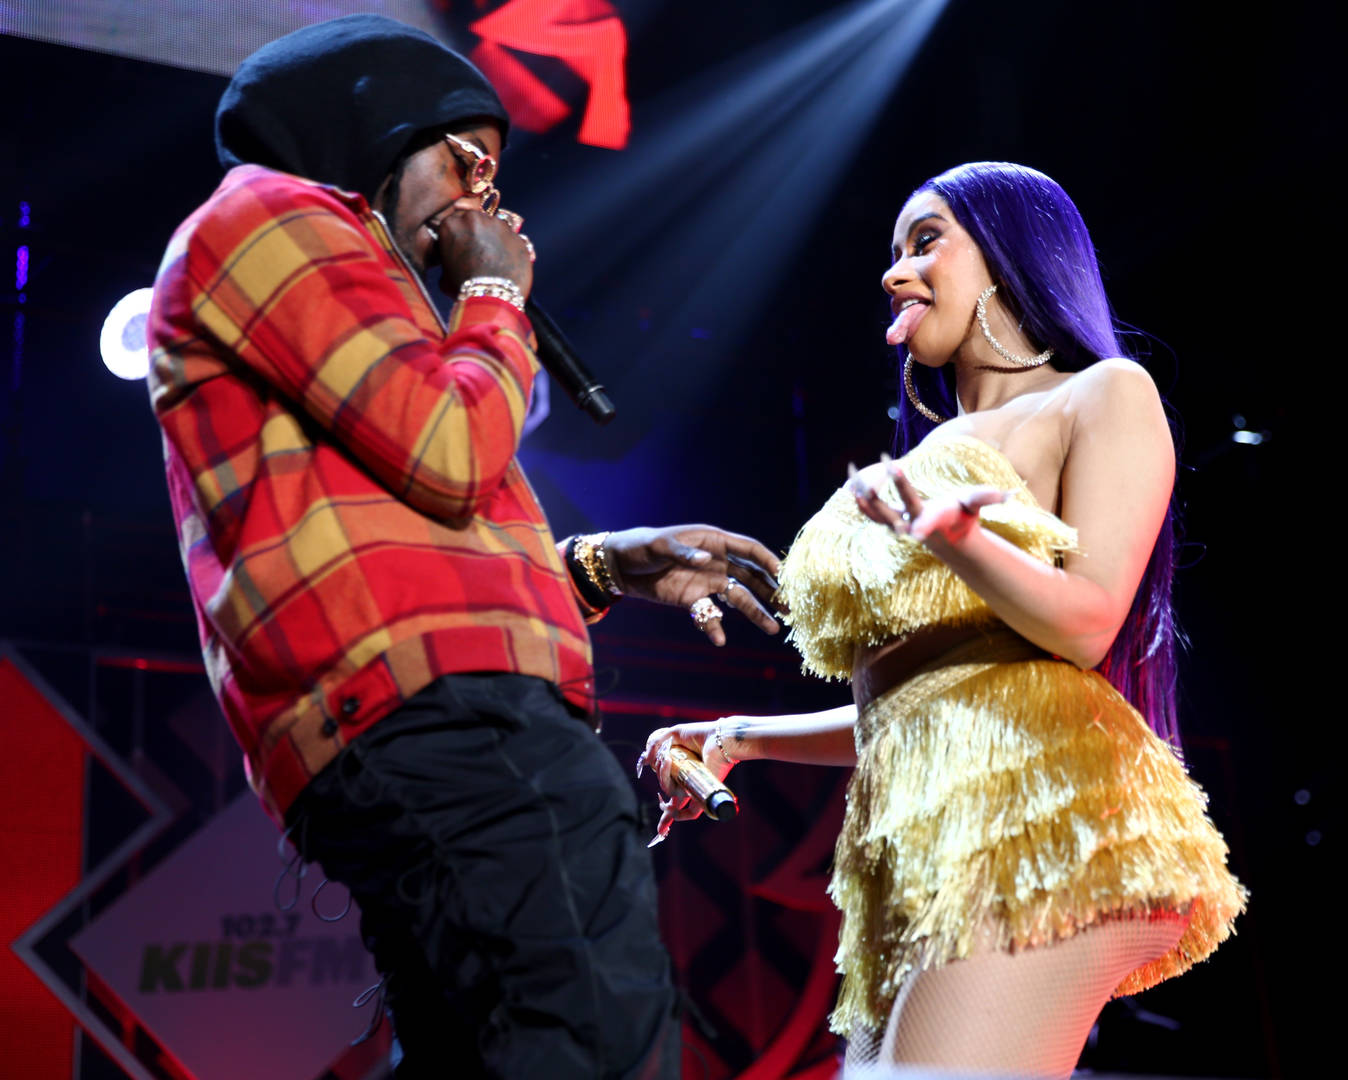 Cardi B makes minute-long court appearance during frigid cold